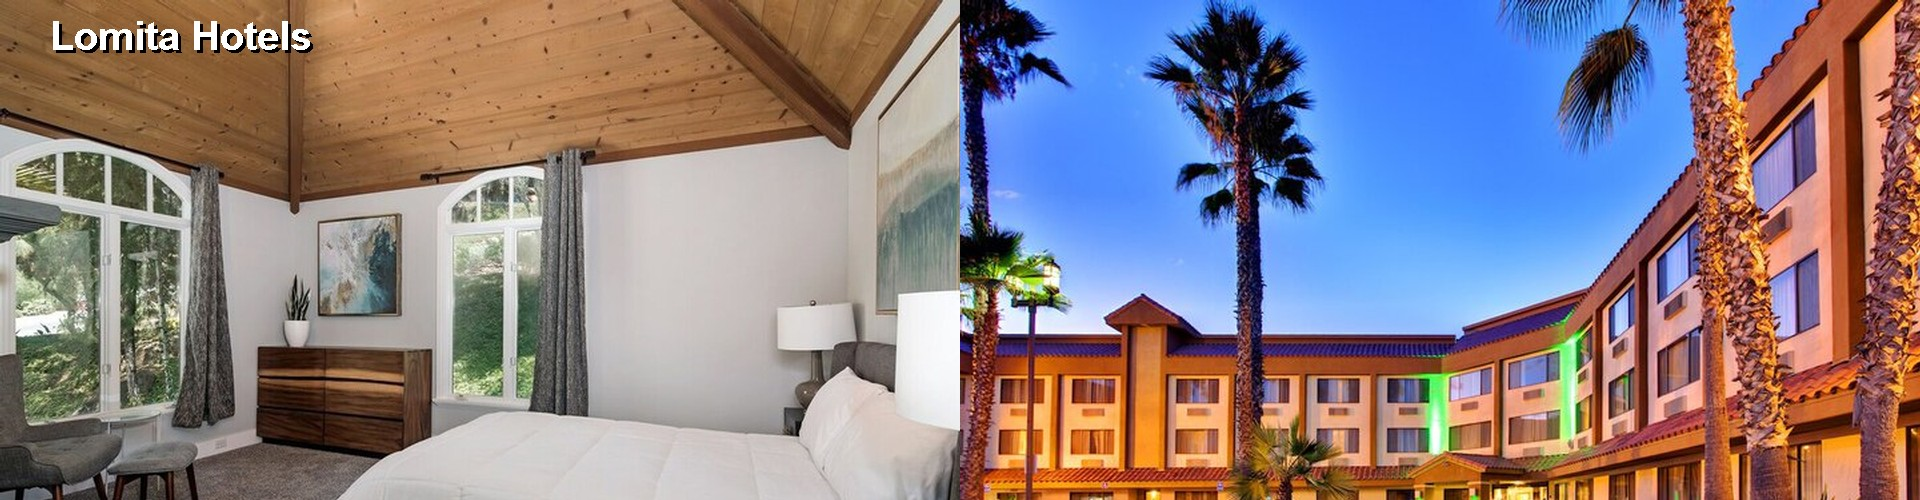 5 Best Hotels near Lomita